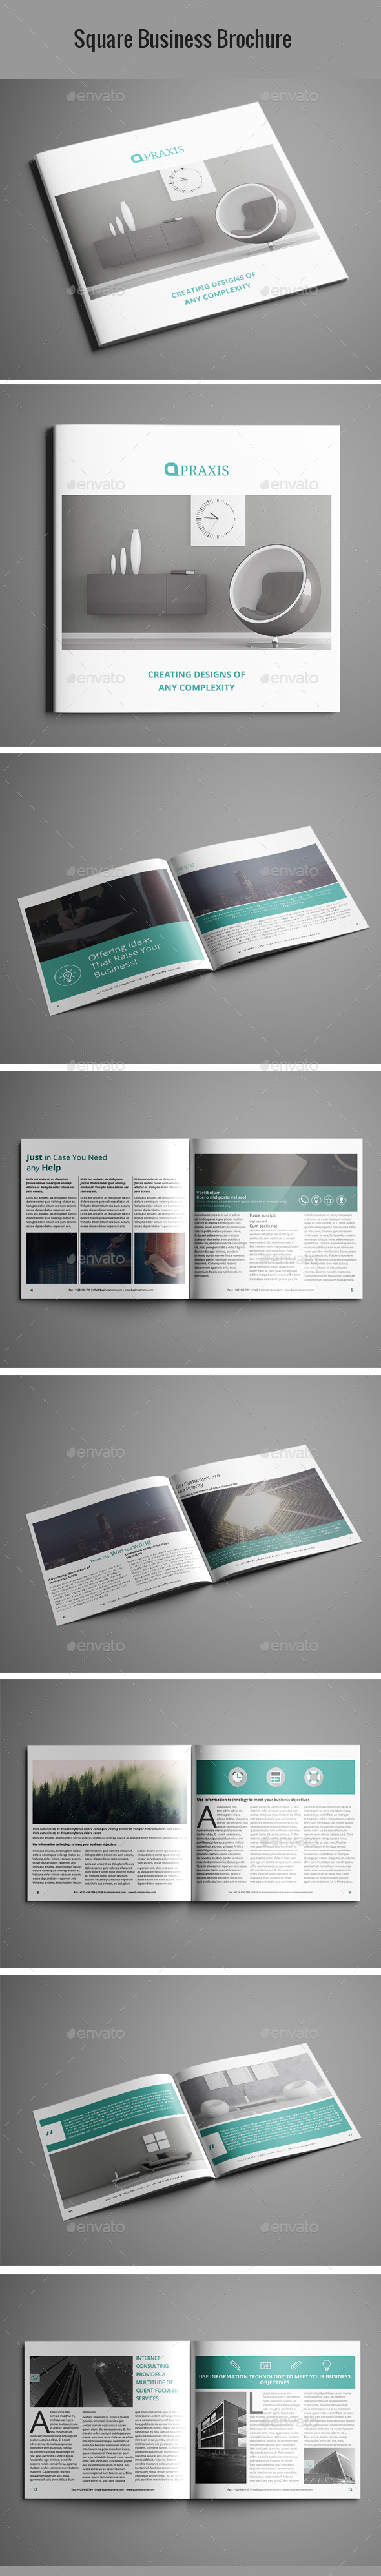 Square Business Brochure - Brochures Print Templates